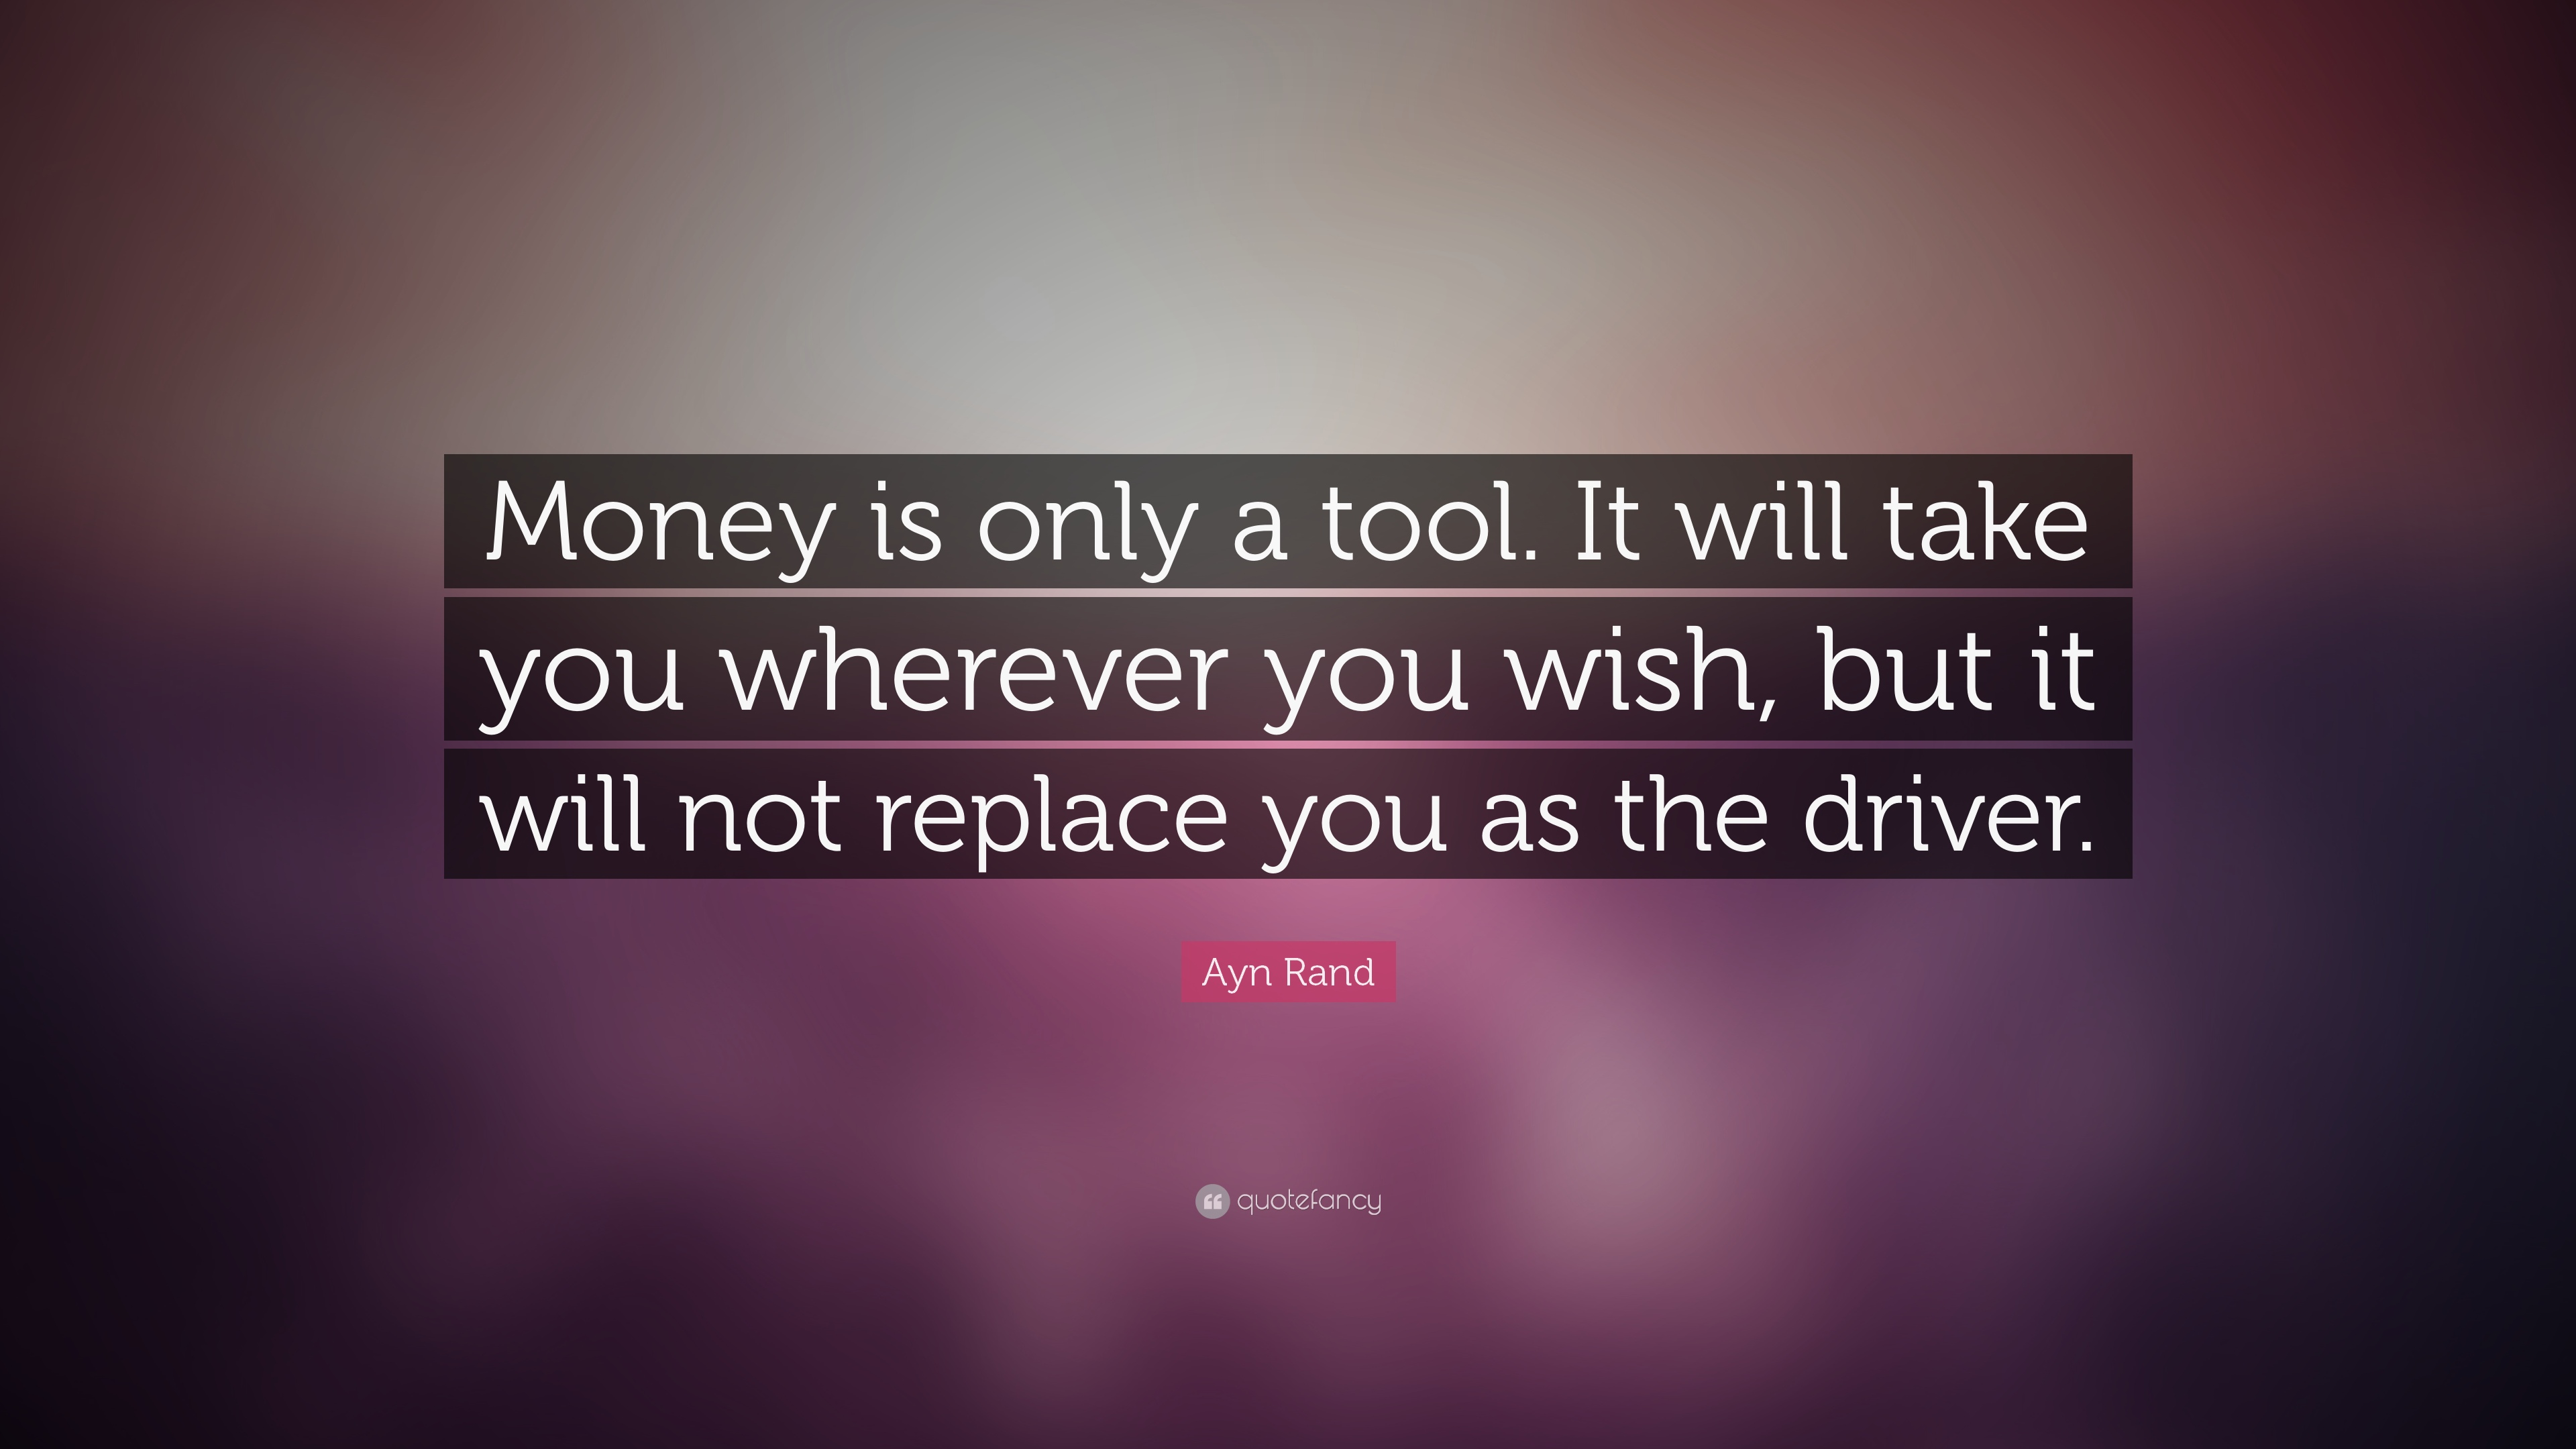 Image result for Money is only a tool. It will take you wherever you wish, but it will not replace you as the driver.